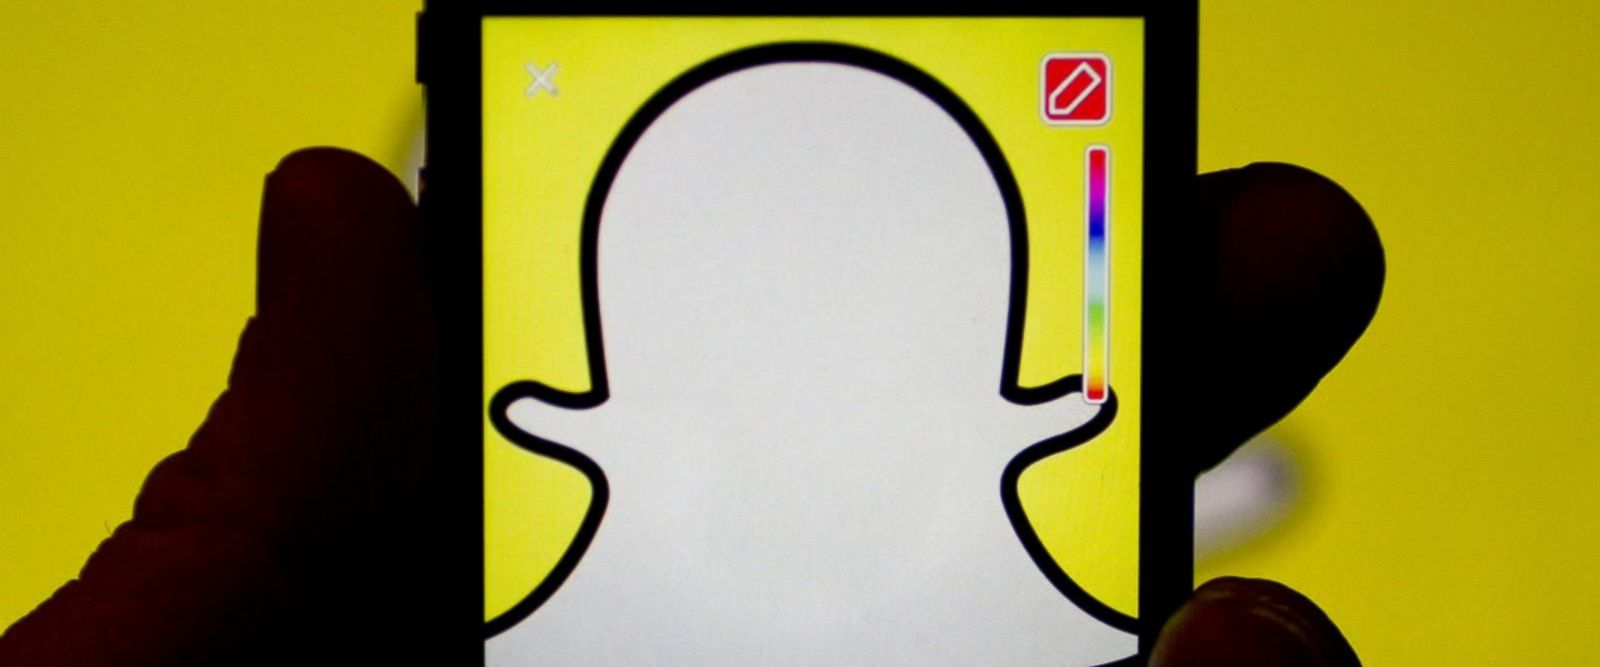 VIDEO: Snapchat promises more tweaks to address user complaints over app redesign